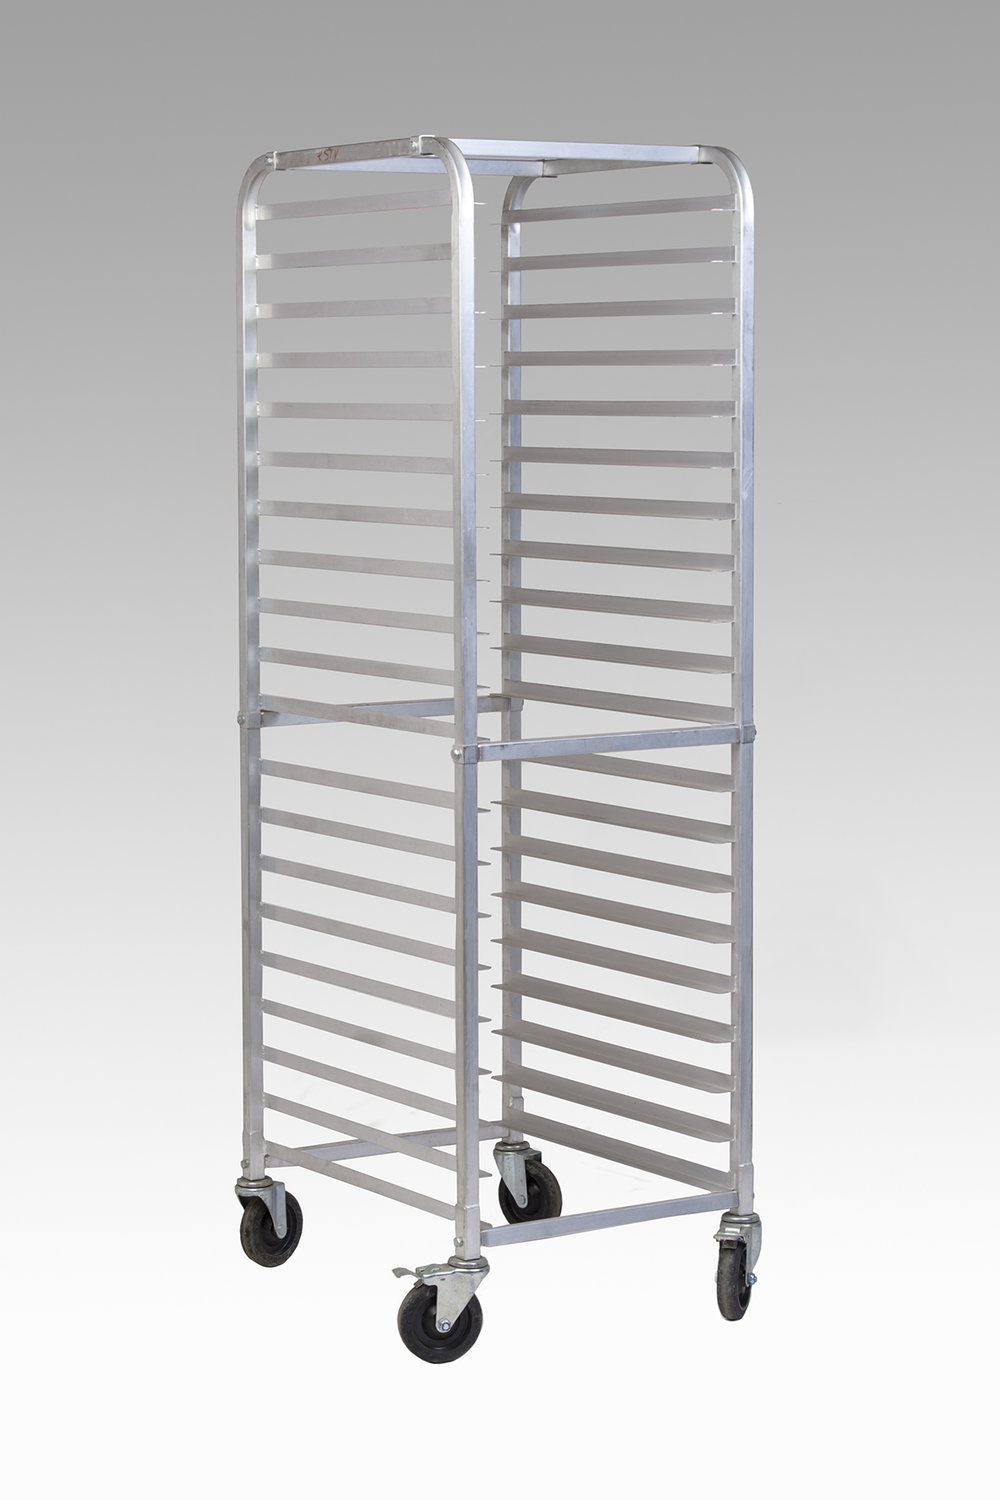 Sheet Pan Cart (20 sheet pan capacity)   $55.00